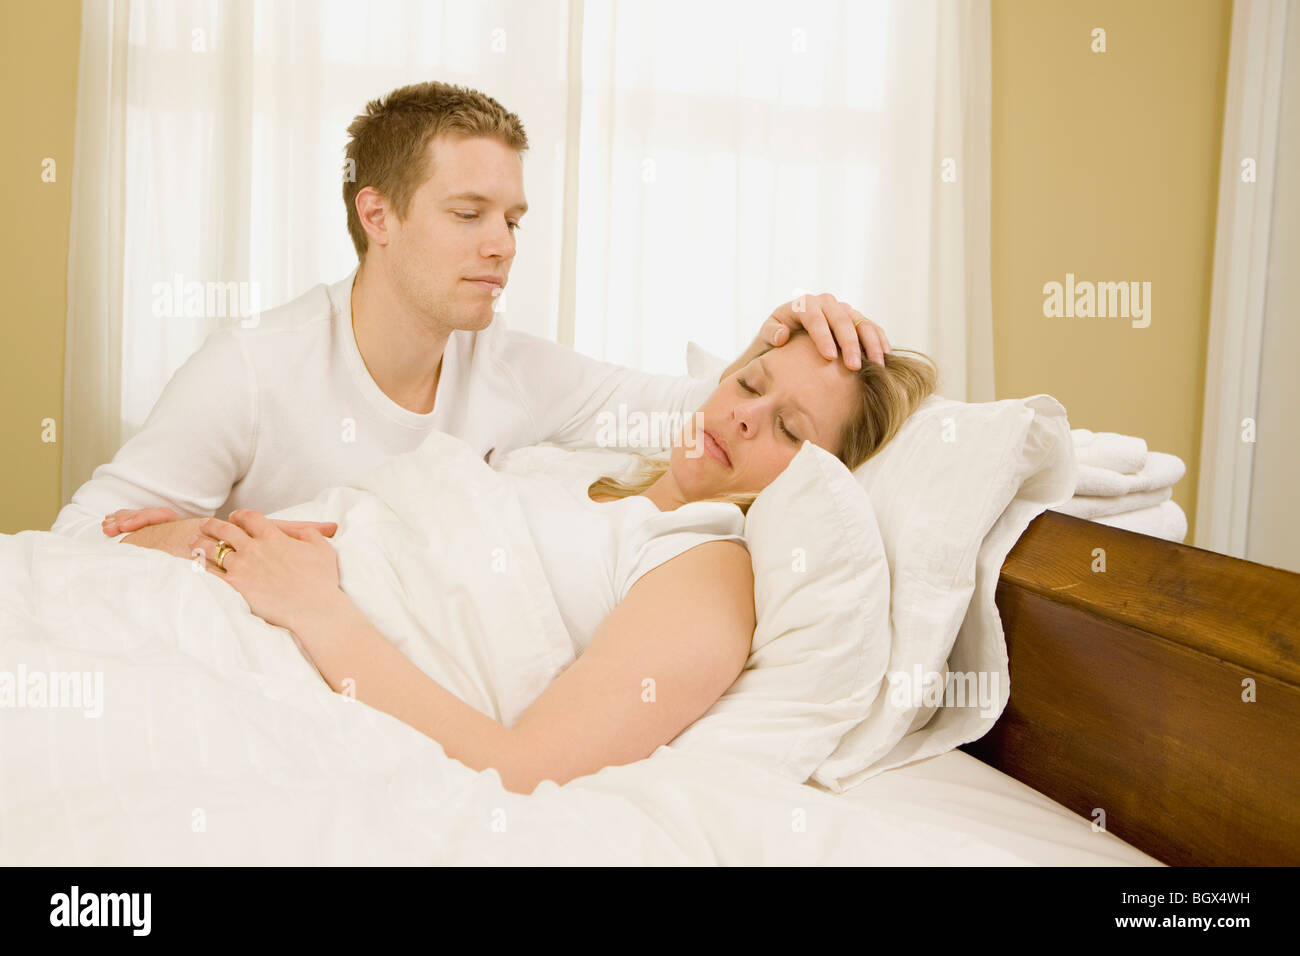 Loving Husband Caring For Sick Wife In Bed Stock Photo